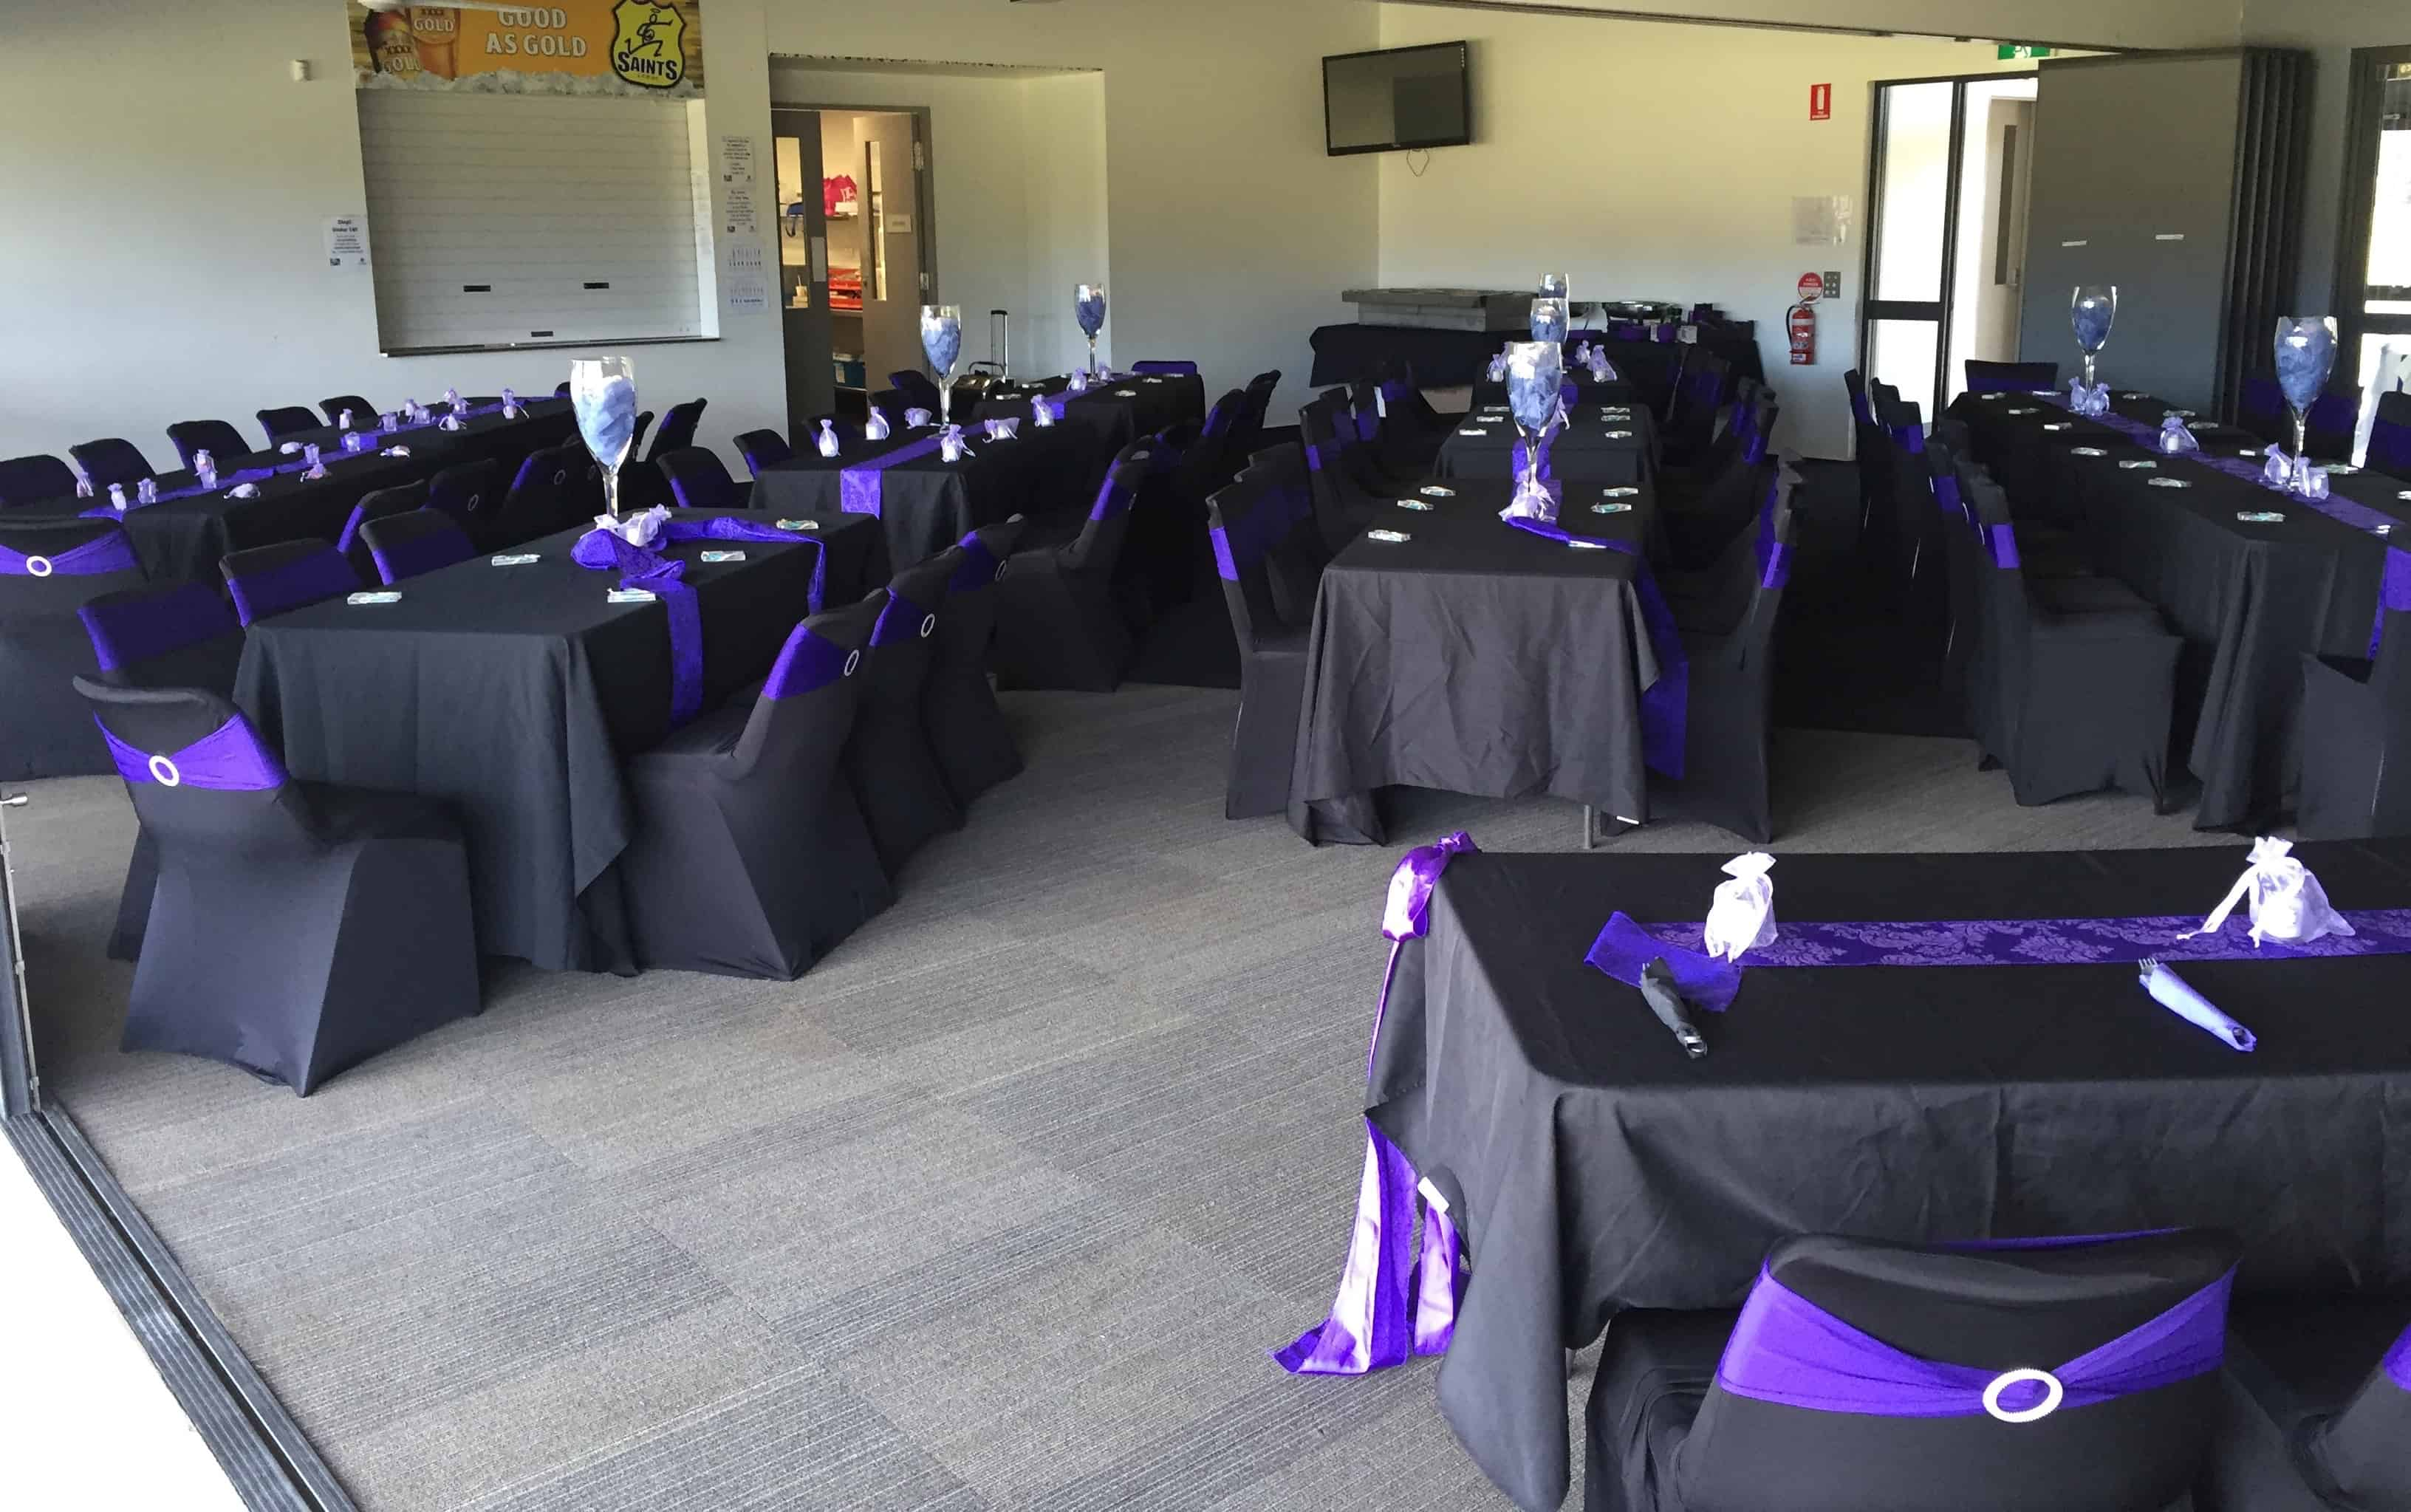 Logan Rugby Club dressed up for a function looking beautiful.